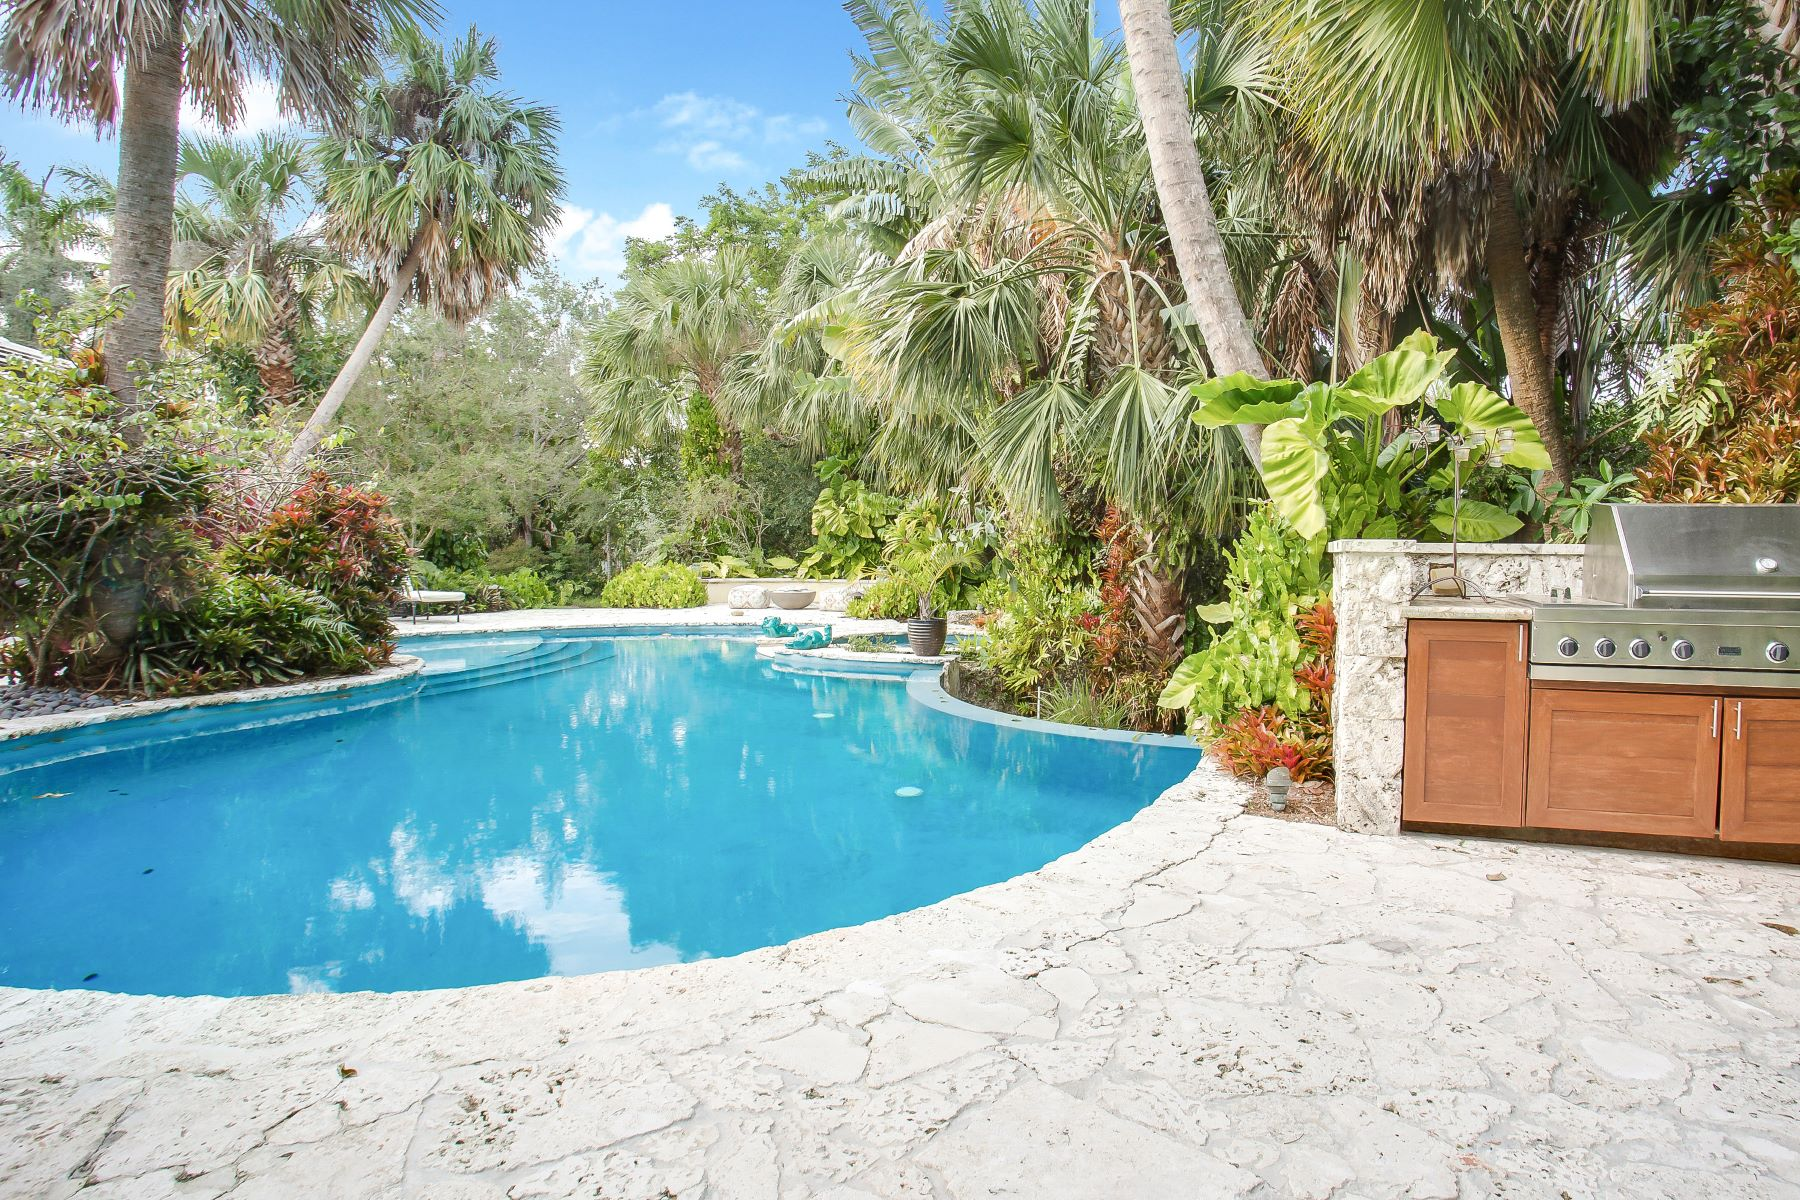 Single Family Home for Sale at 301 Los Pinos Pl Coral Gables, Florida, 33143 United States